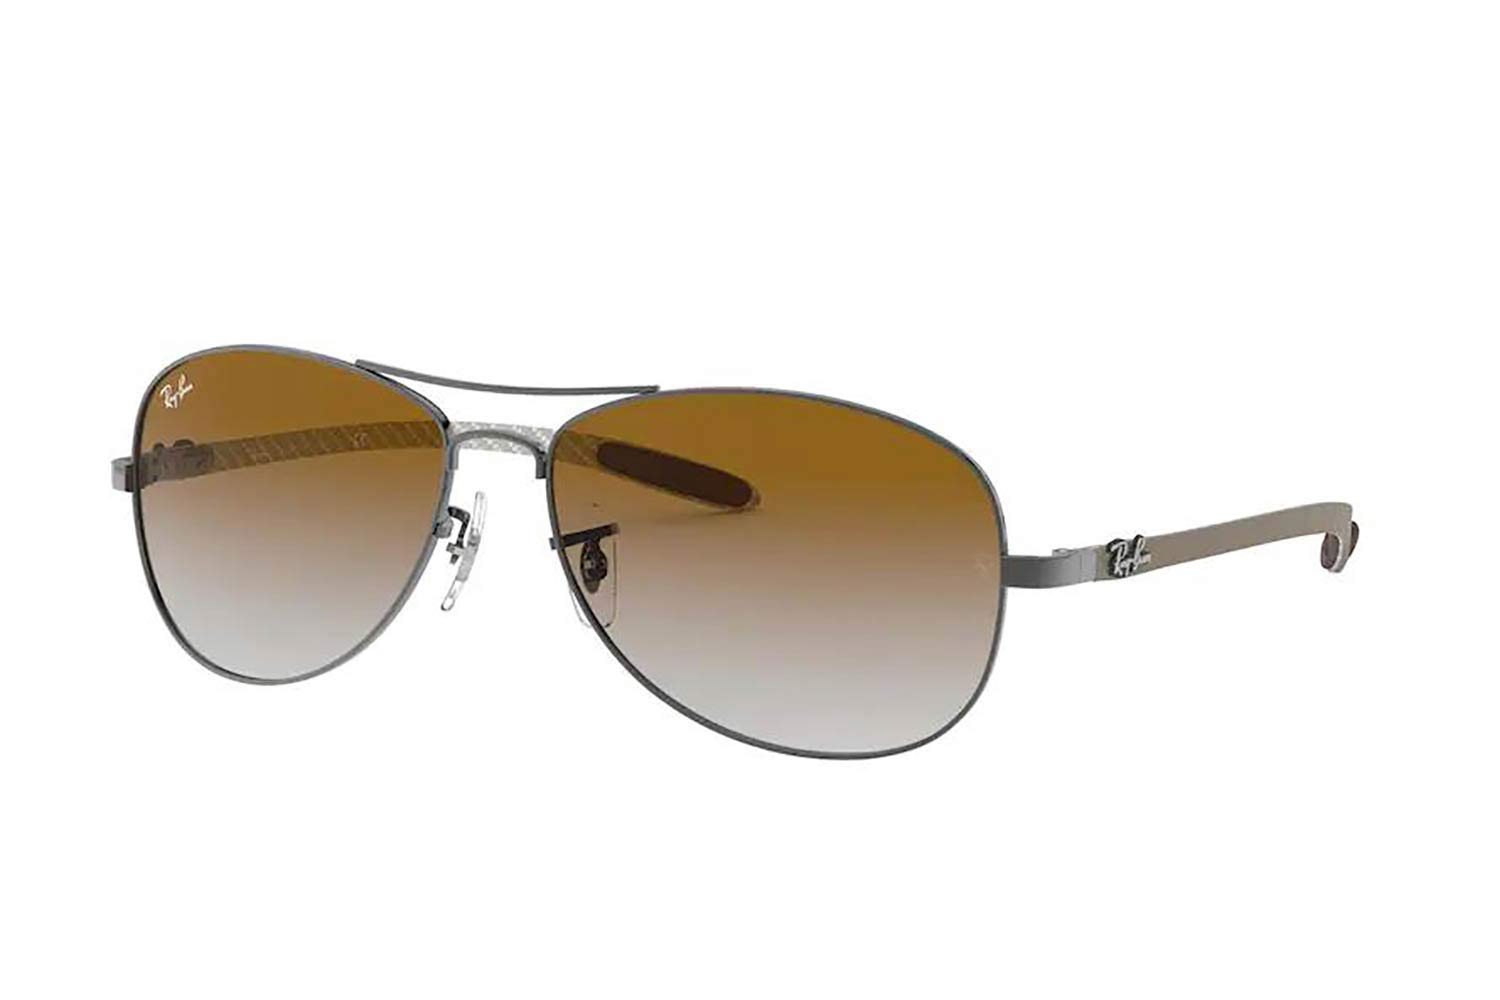 27a731a6600 Ray Ban Sweden Store Locator